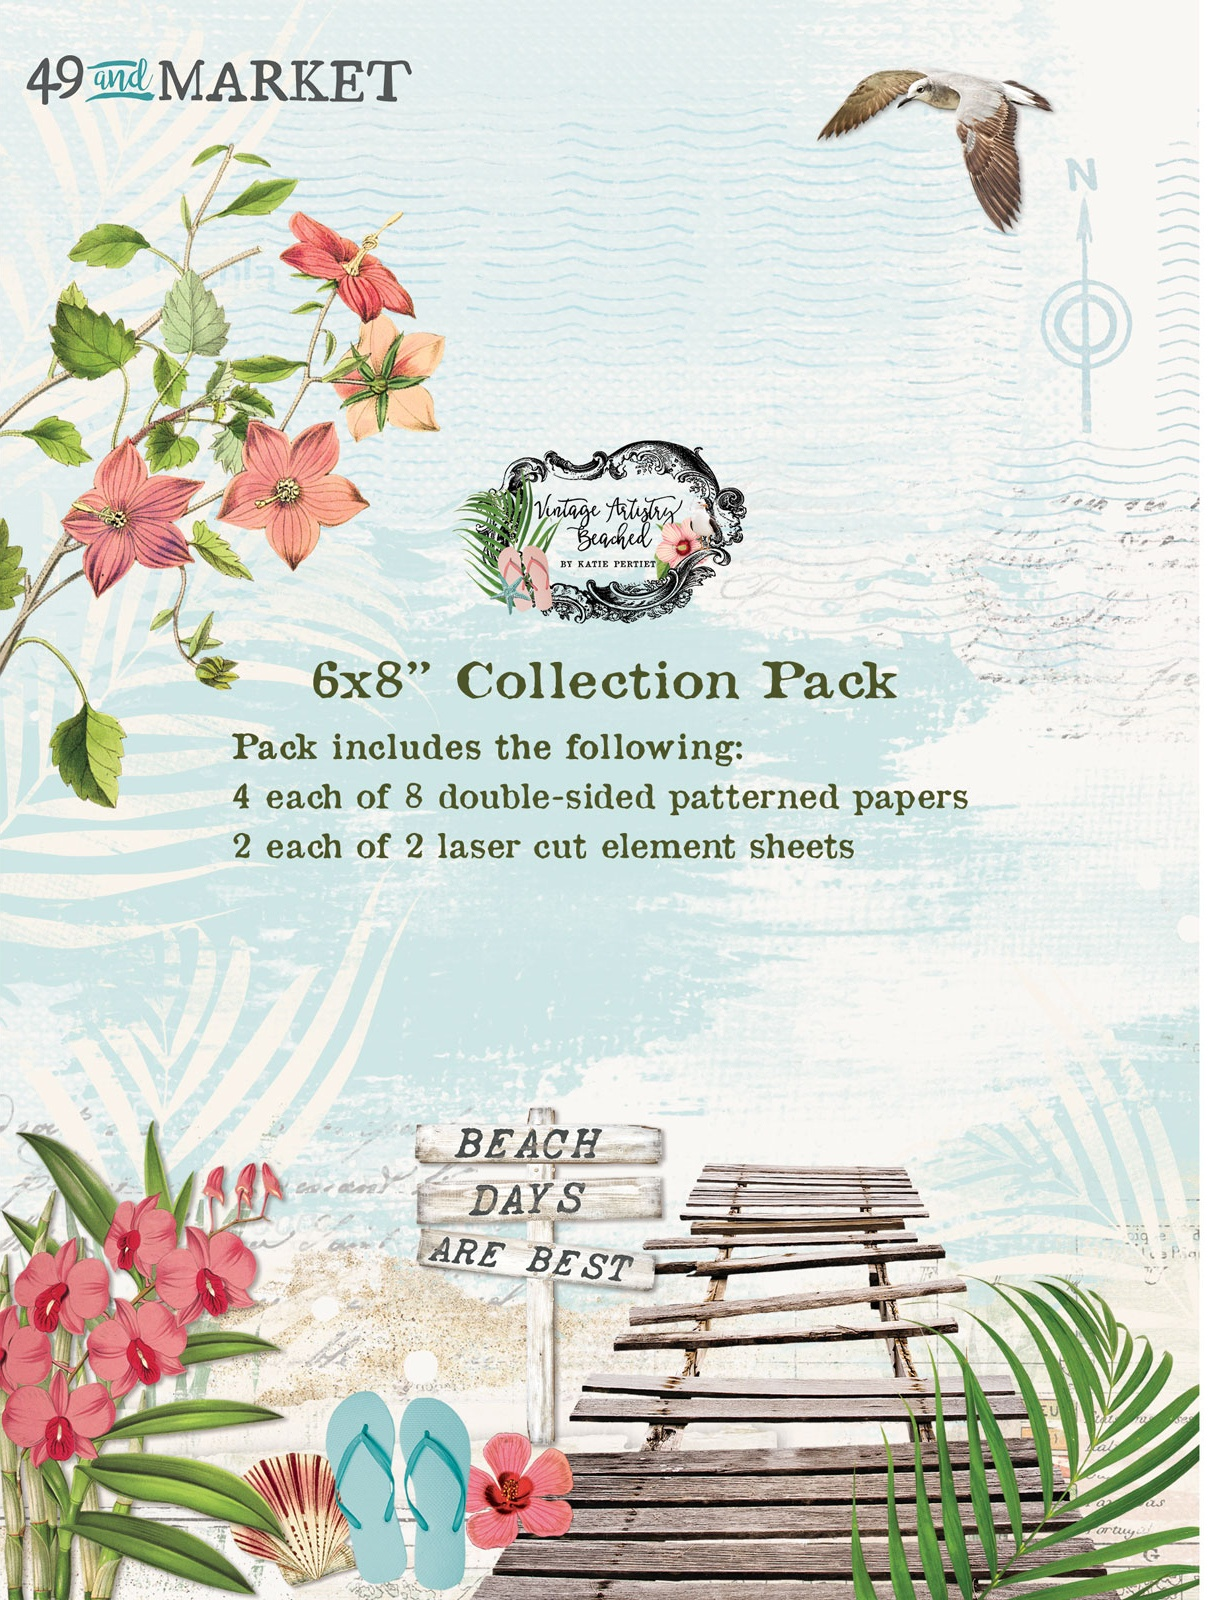 49 And Market Collection Pack 6X8-Vintage Artistry Beached